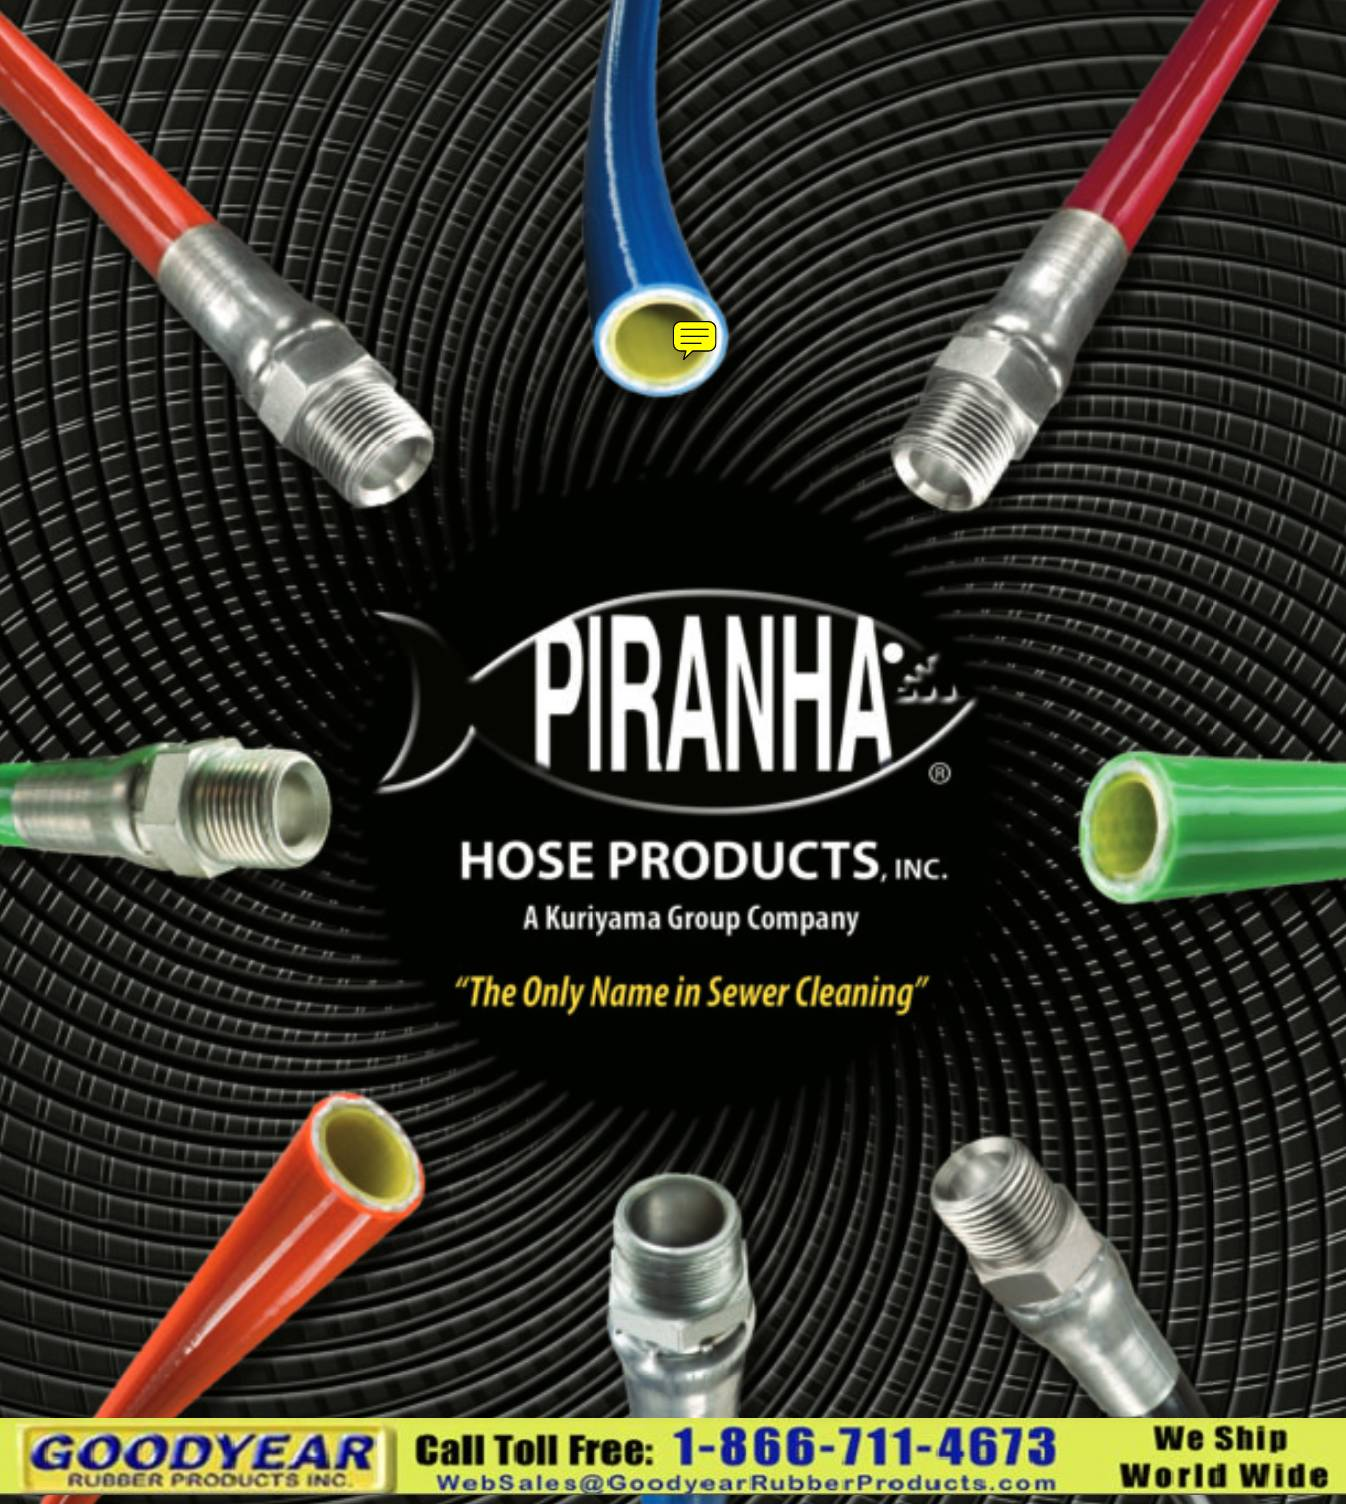 Piranha Sewer Cleaning Hose